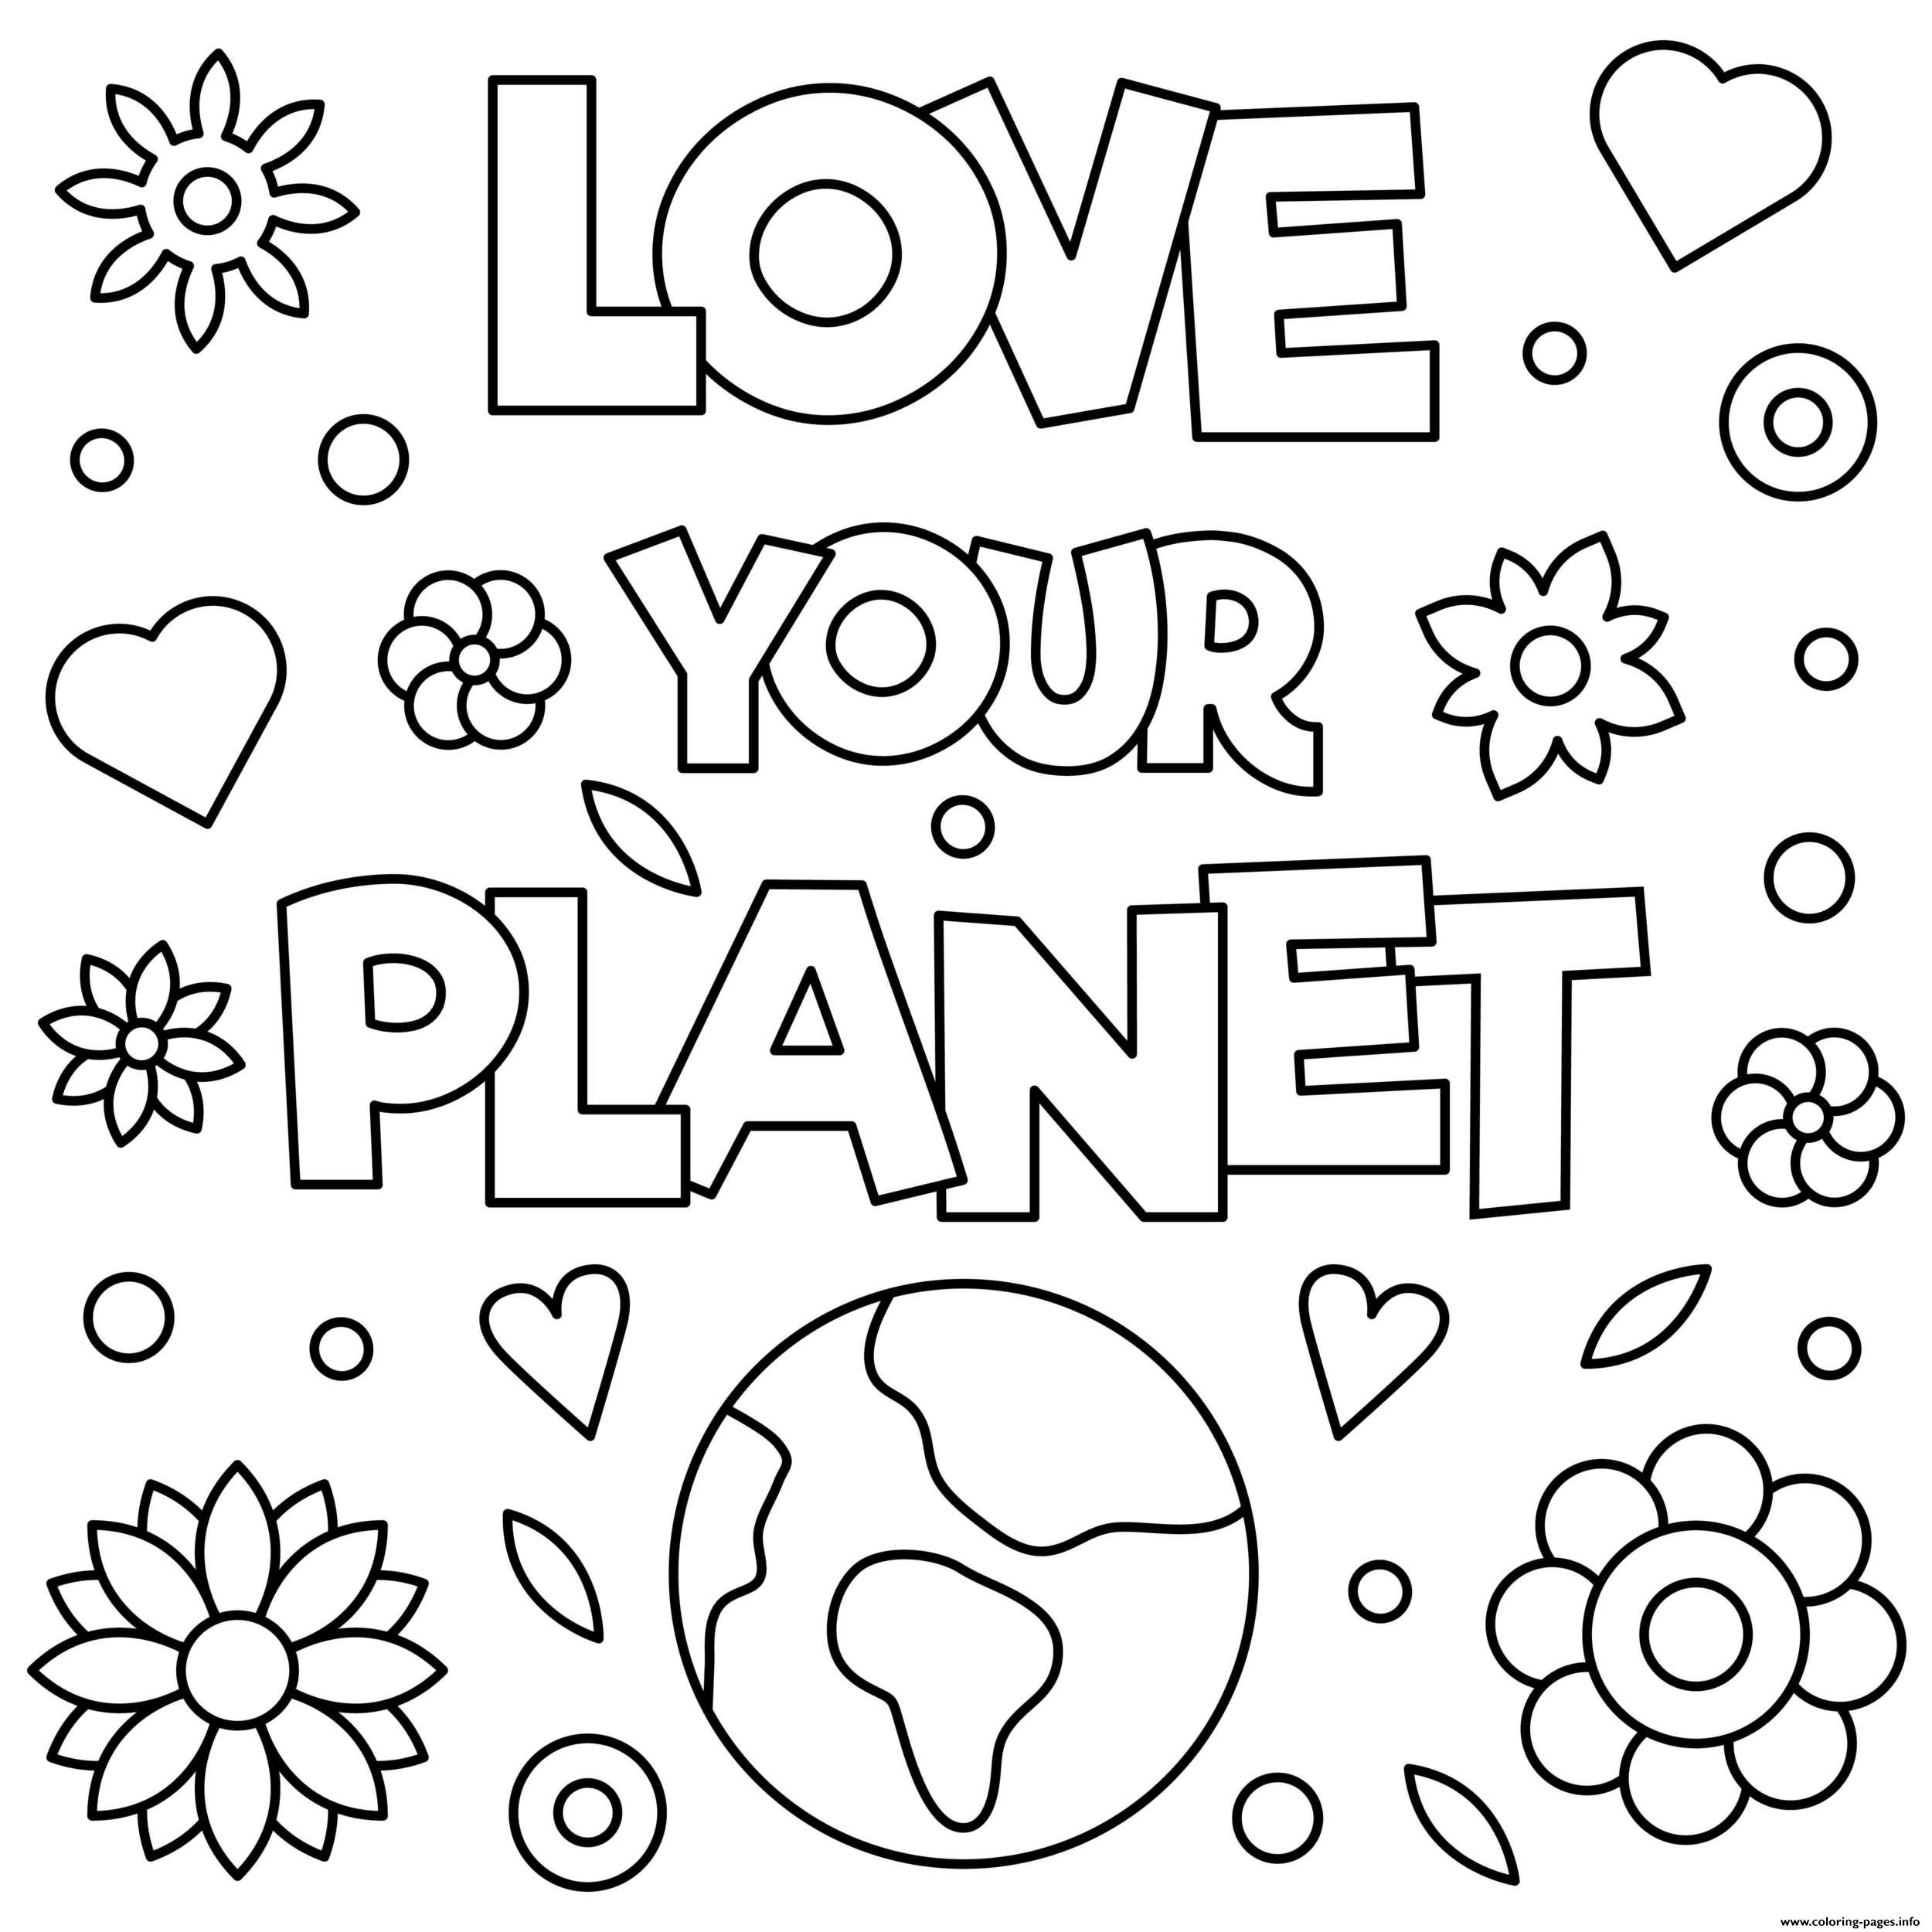 Love Your Planet Earth Day 22 April coloring pages